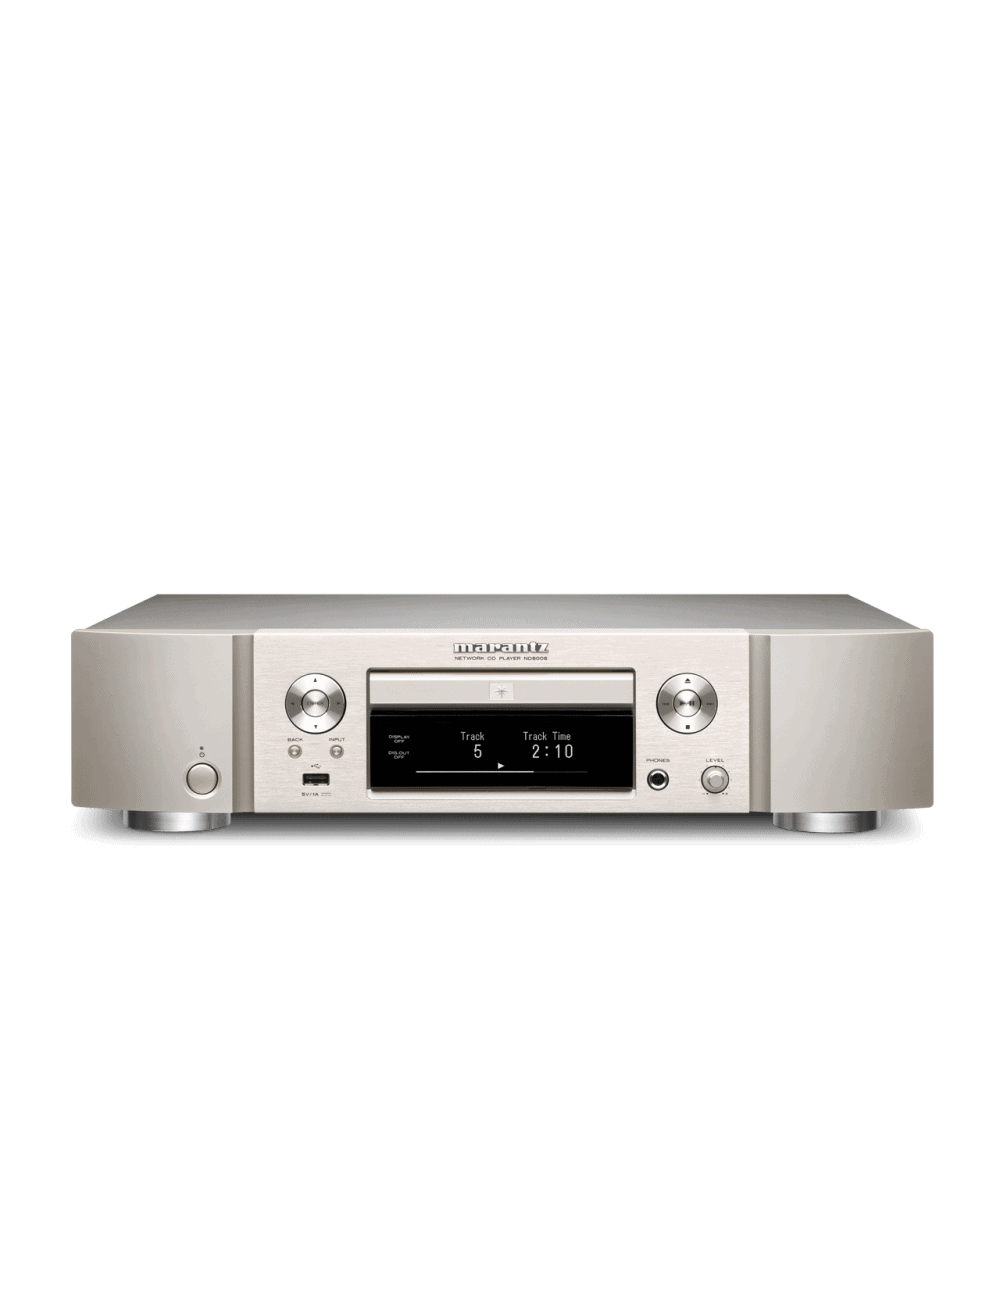 lettore cd e di rete HiFi Marantz ND8006 a due canali con HEOS streaming, finitura Silver Gold, frontale